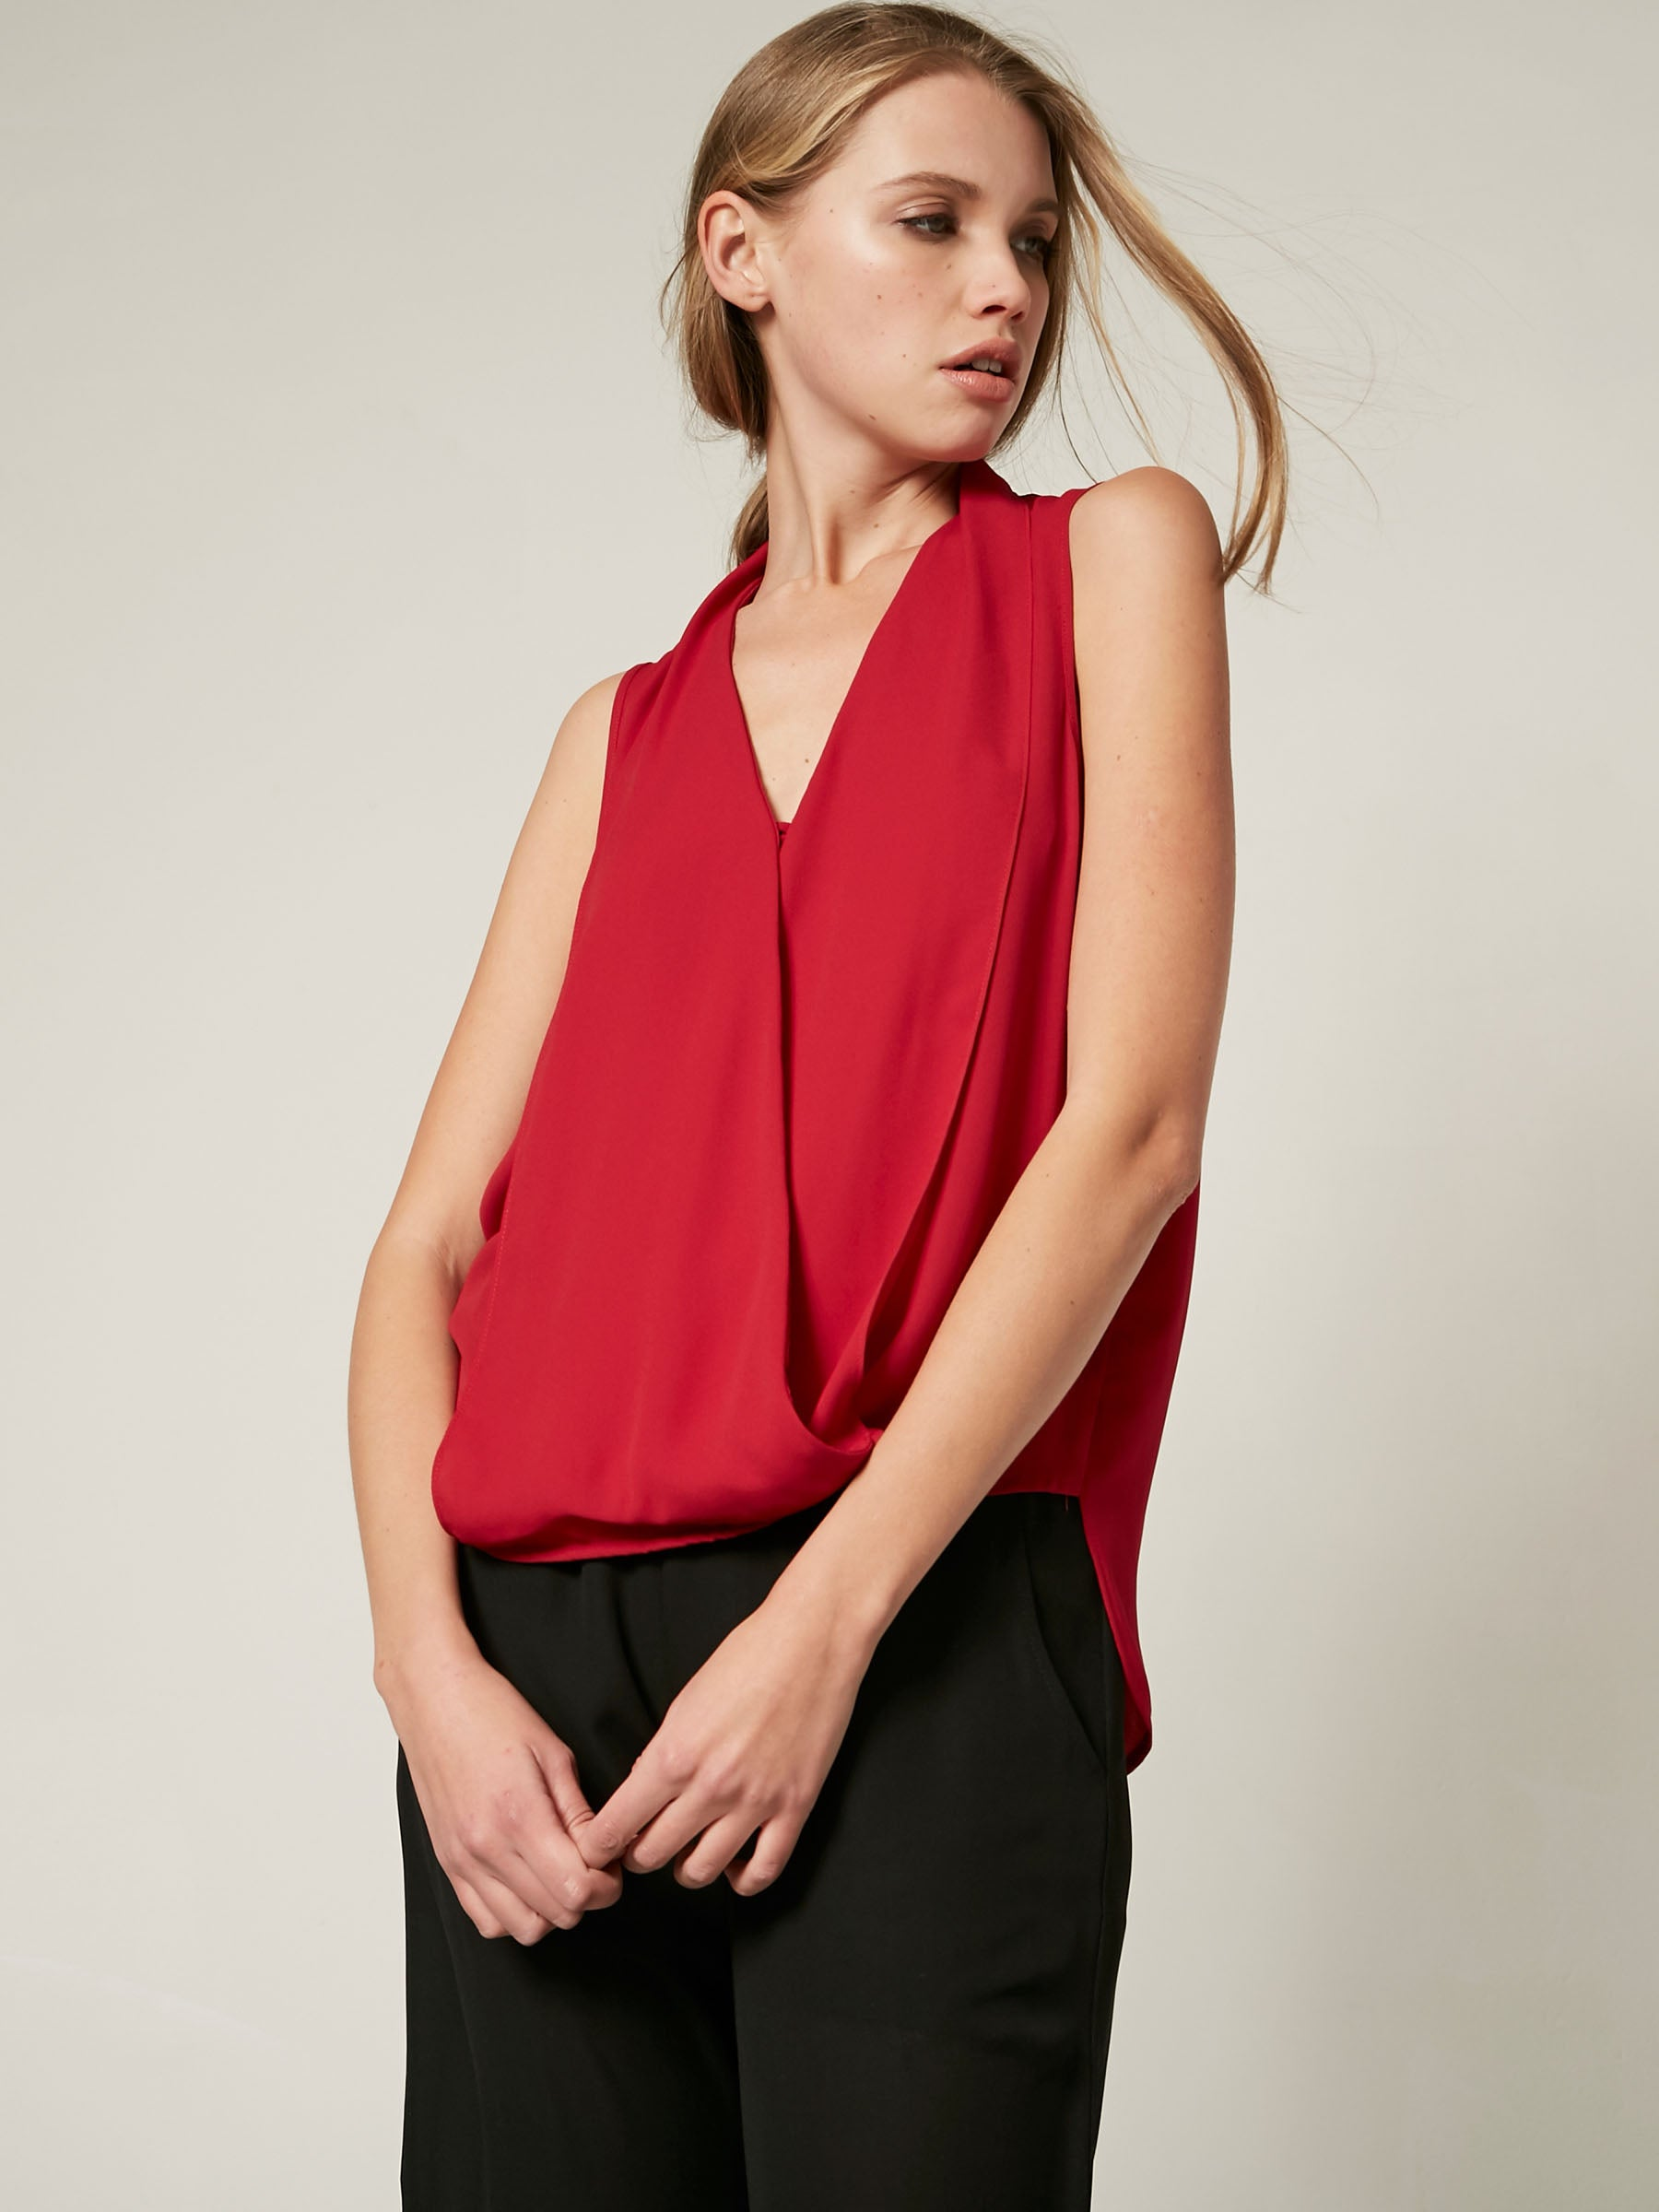 surplice tank, tank top, office wear, everyday top, woven top, ruby, red, v neck